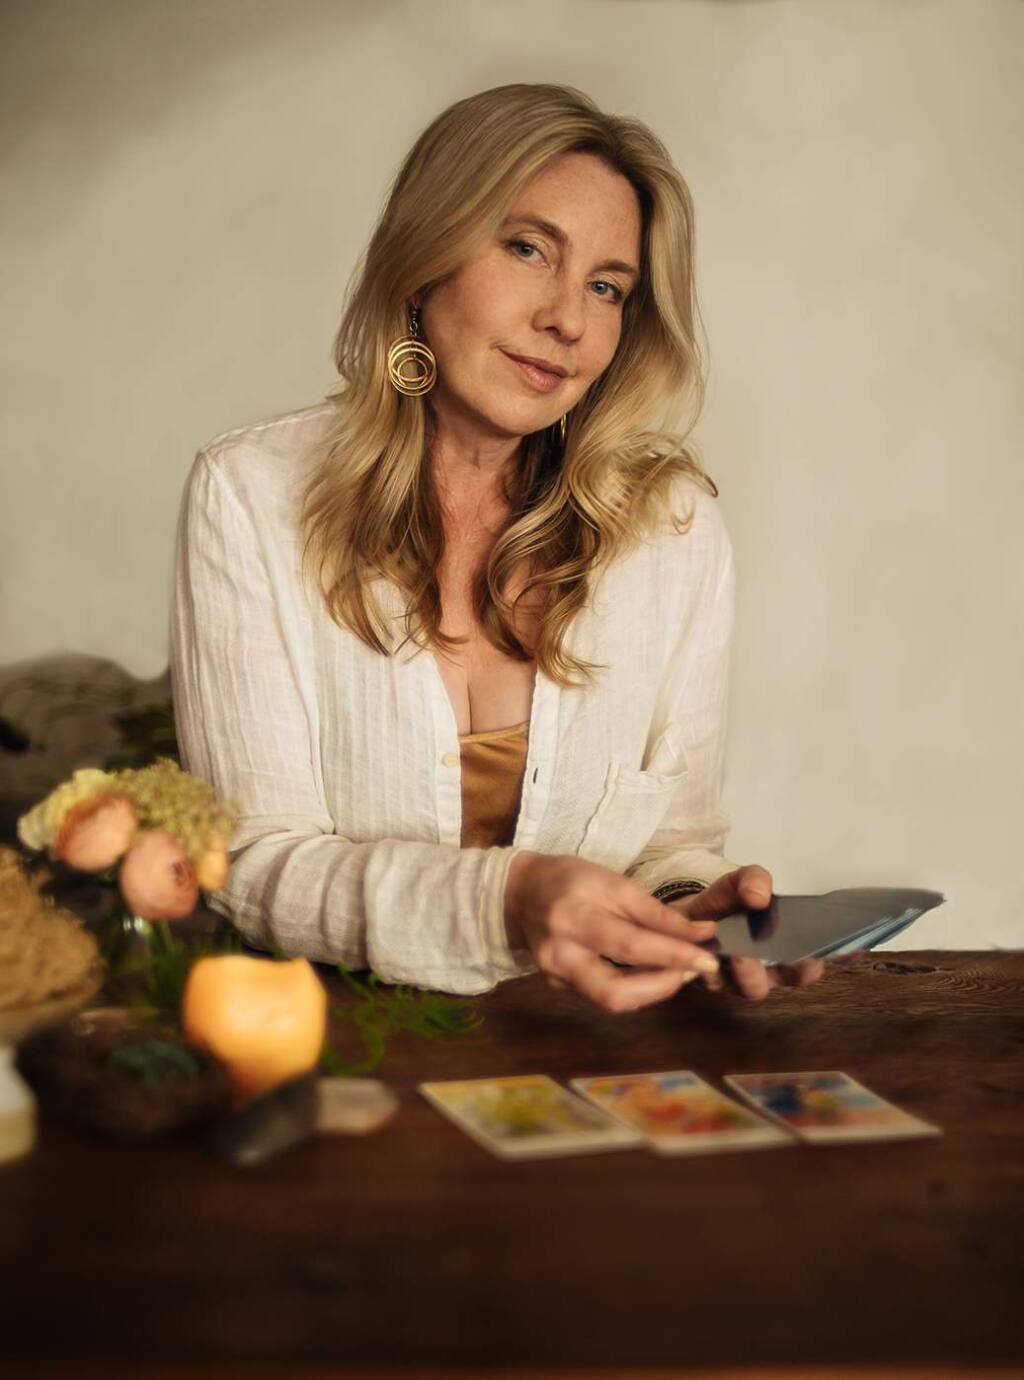 GOOD FORTUNE: Petaluma artist Karen Hess, with her new Spark Tarot deck, bringing a modern sensibility to an old tradition.